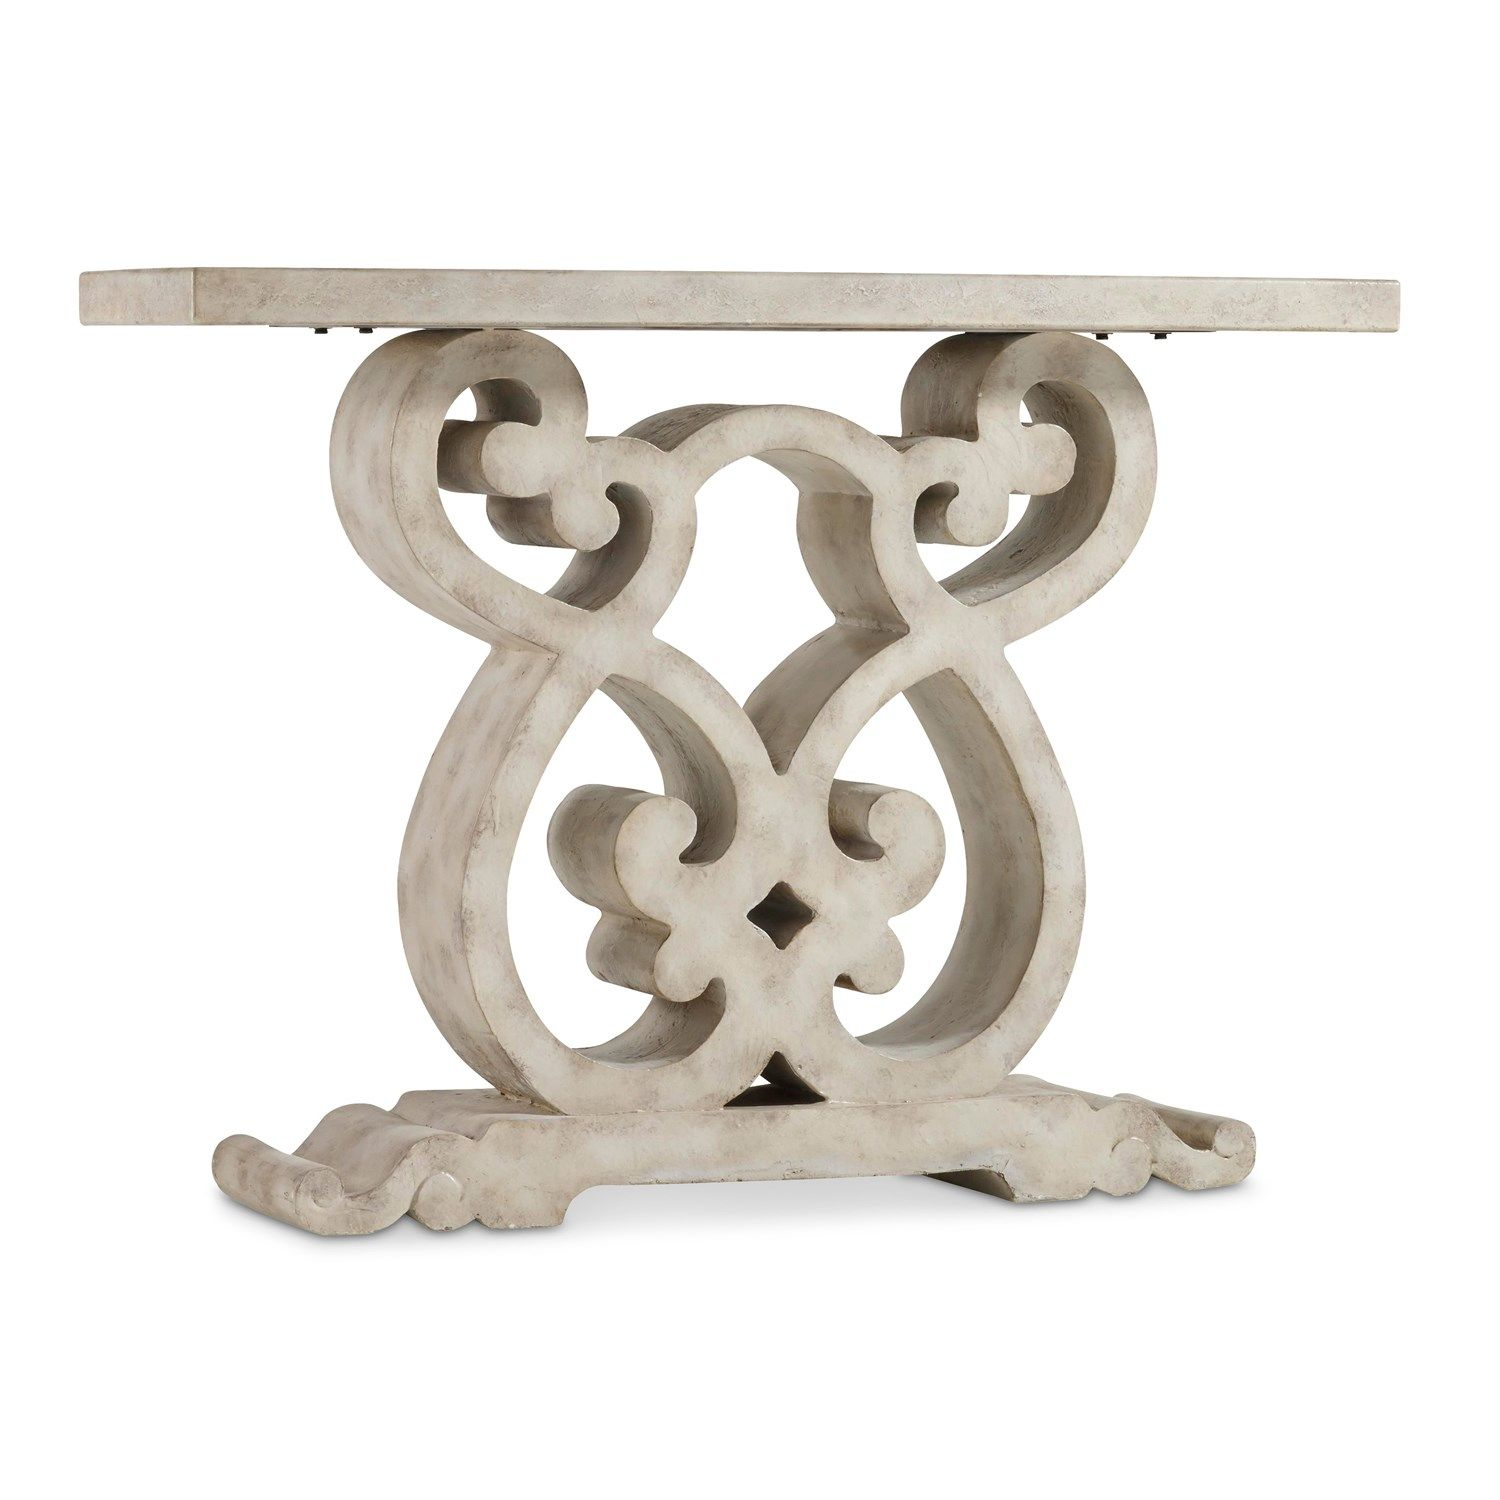 Hooker Furniture 5312 85001 Scroll Console Table In White/Cream/Beige